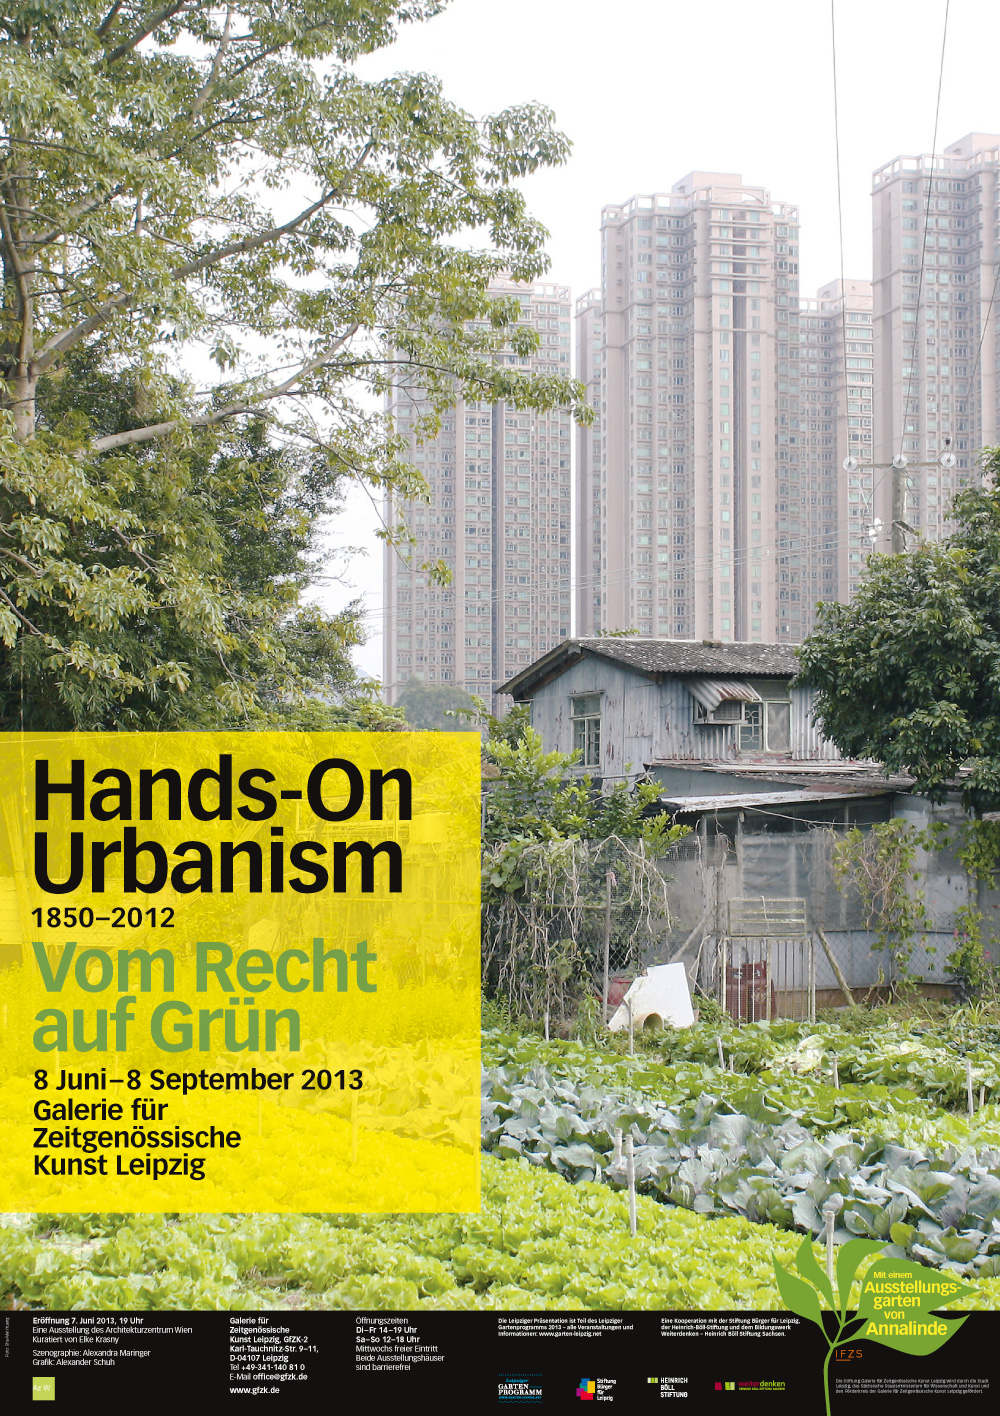 hands-on-urbanism_elke-krasny_leipzig_2013_